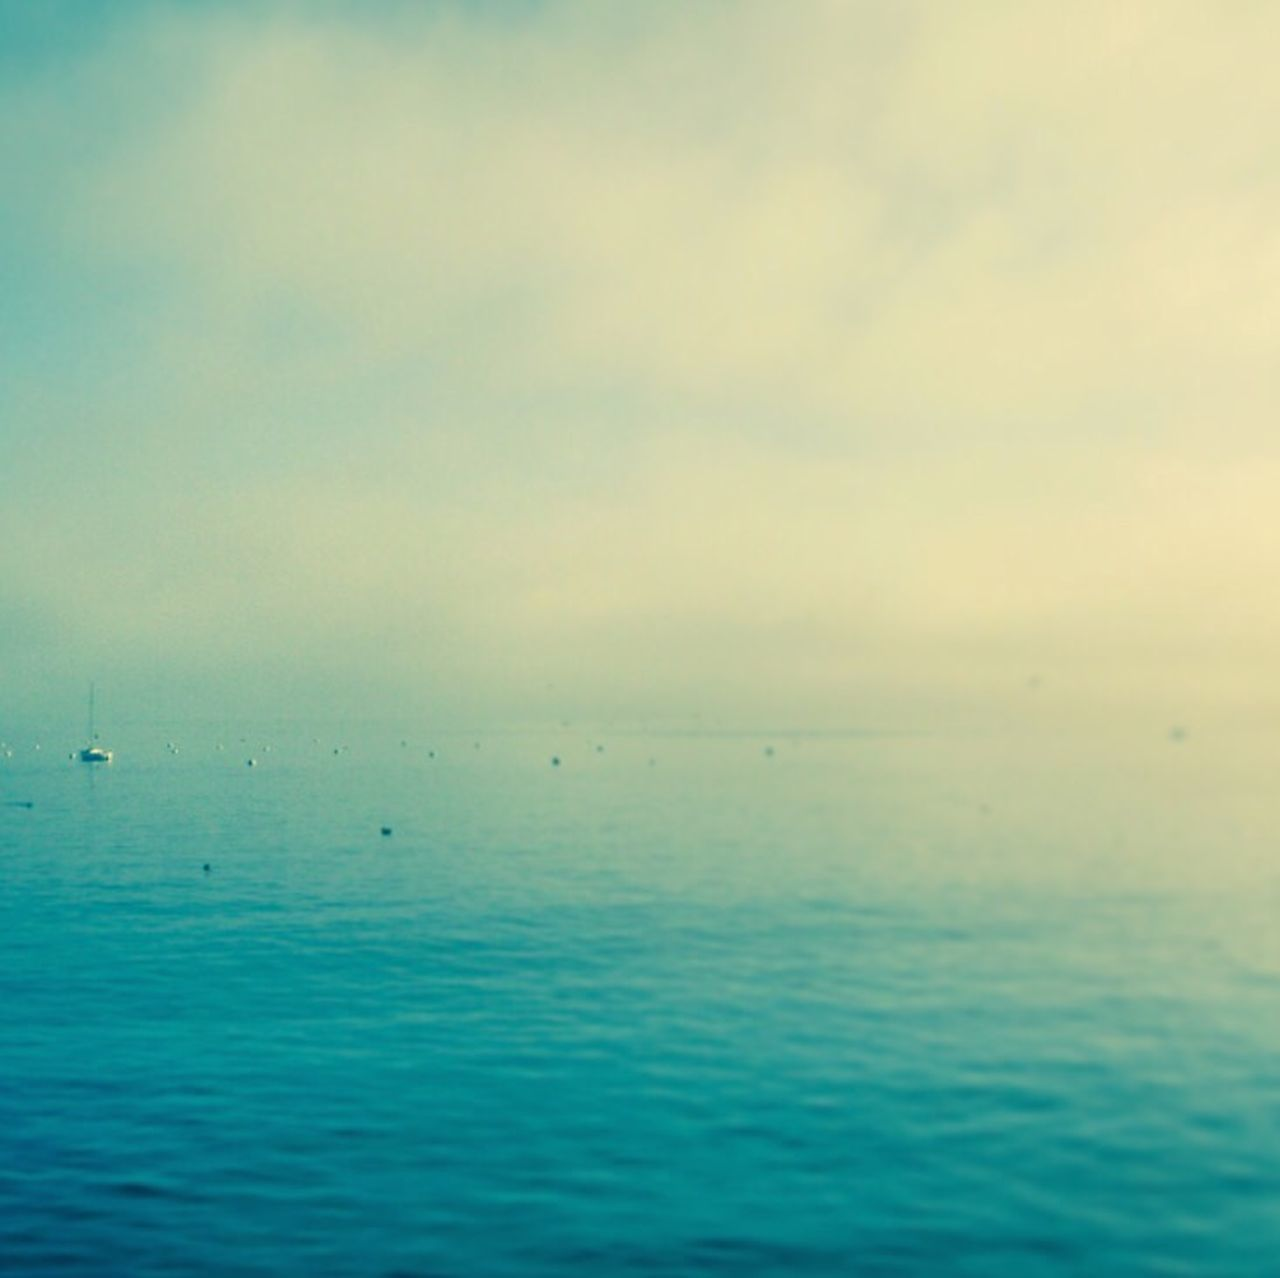 sea, water, tranquil scene, beauty in nature, tranquility, horizon over water, scenics, nature, waterfront, sky, idyllic, outdoors, no people, day